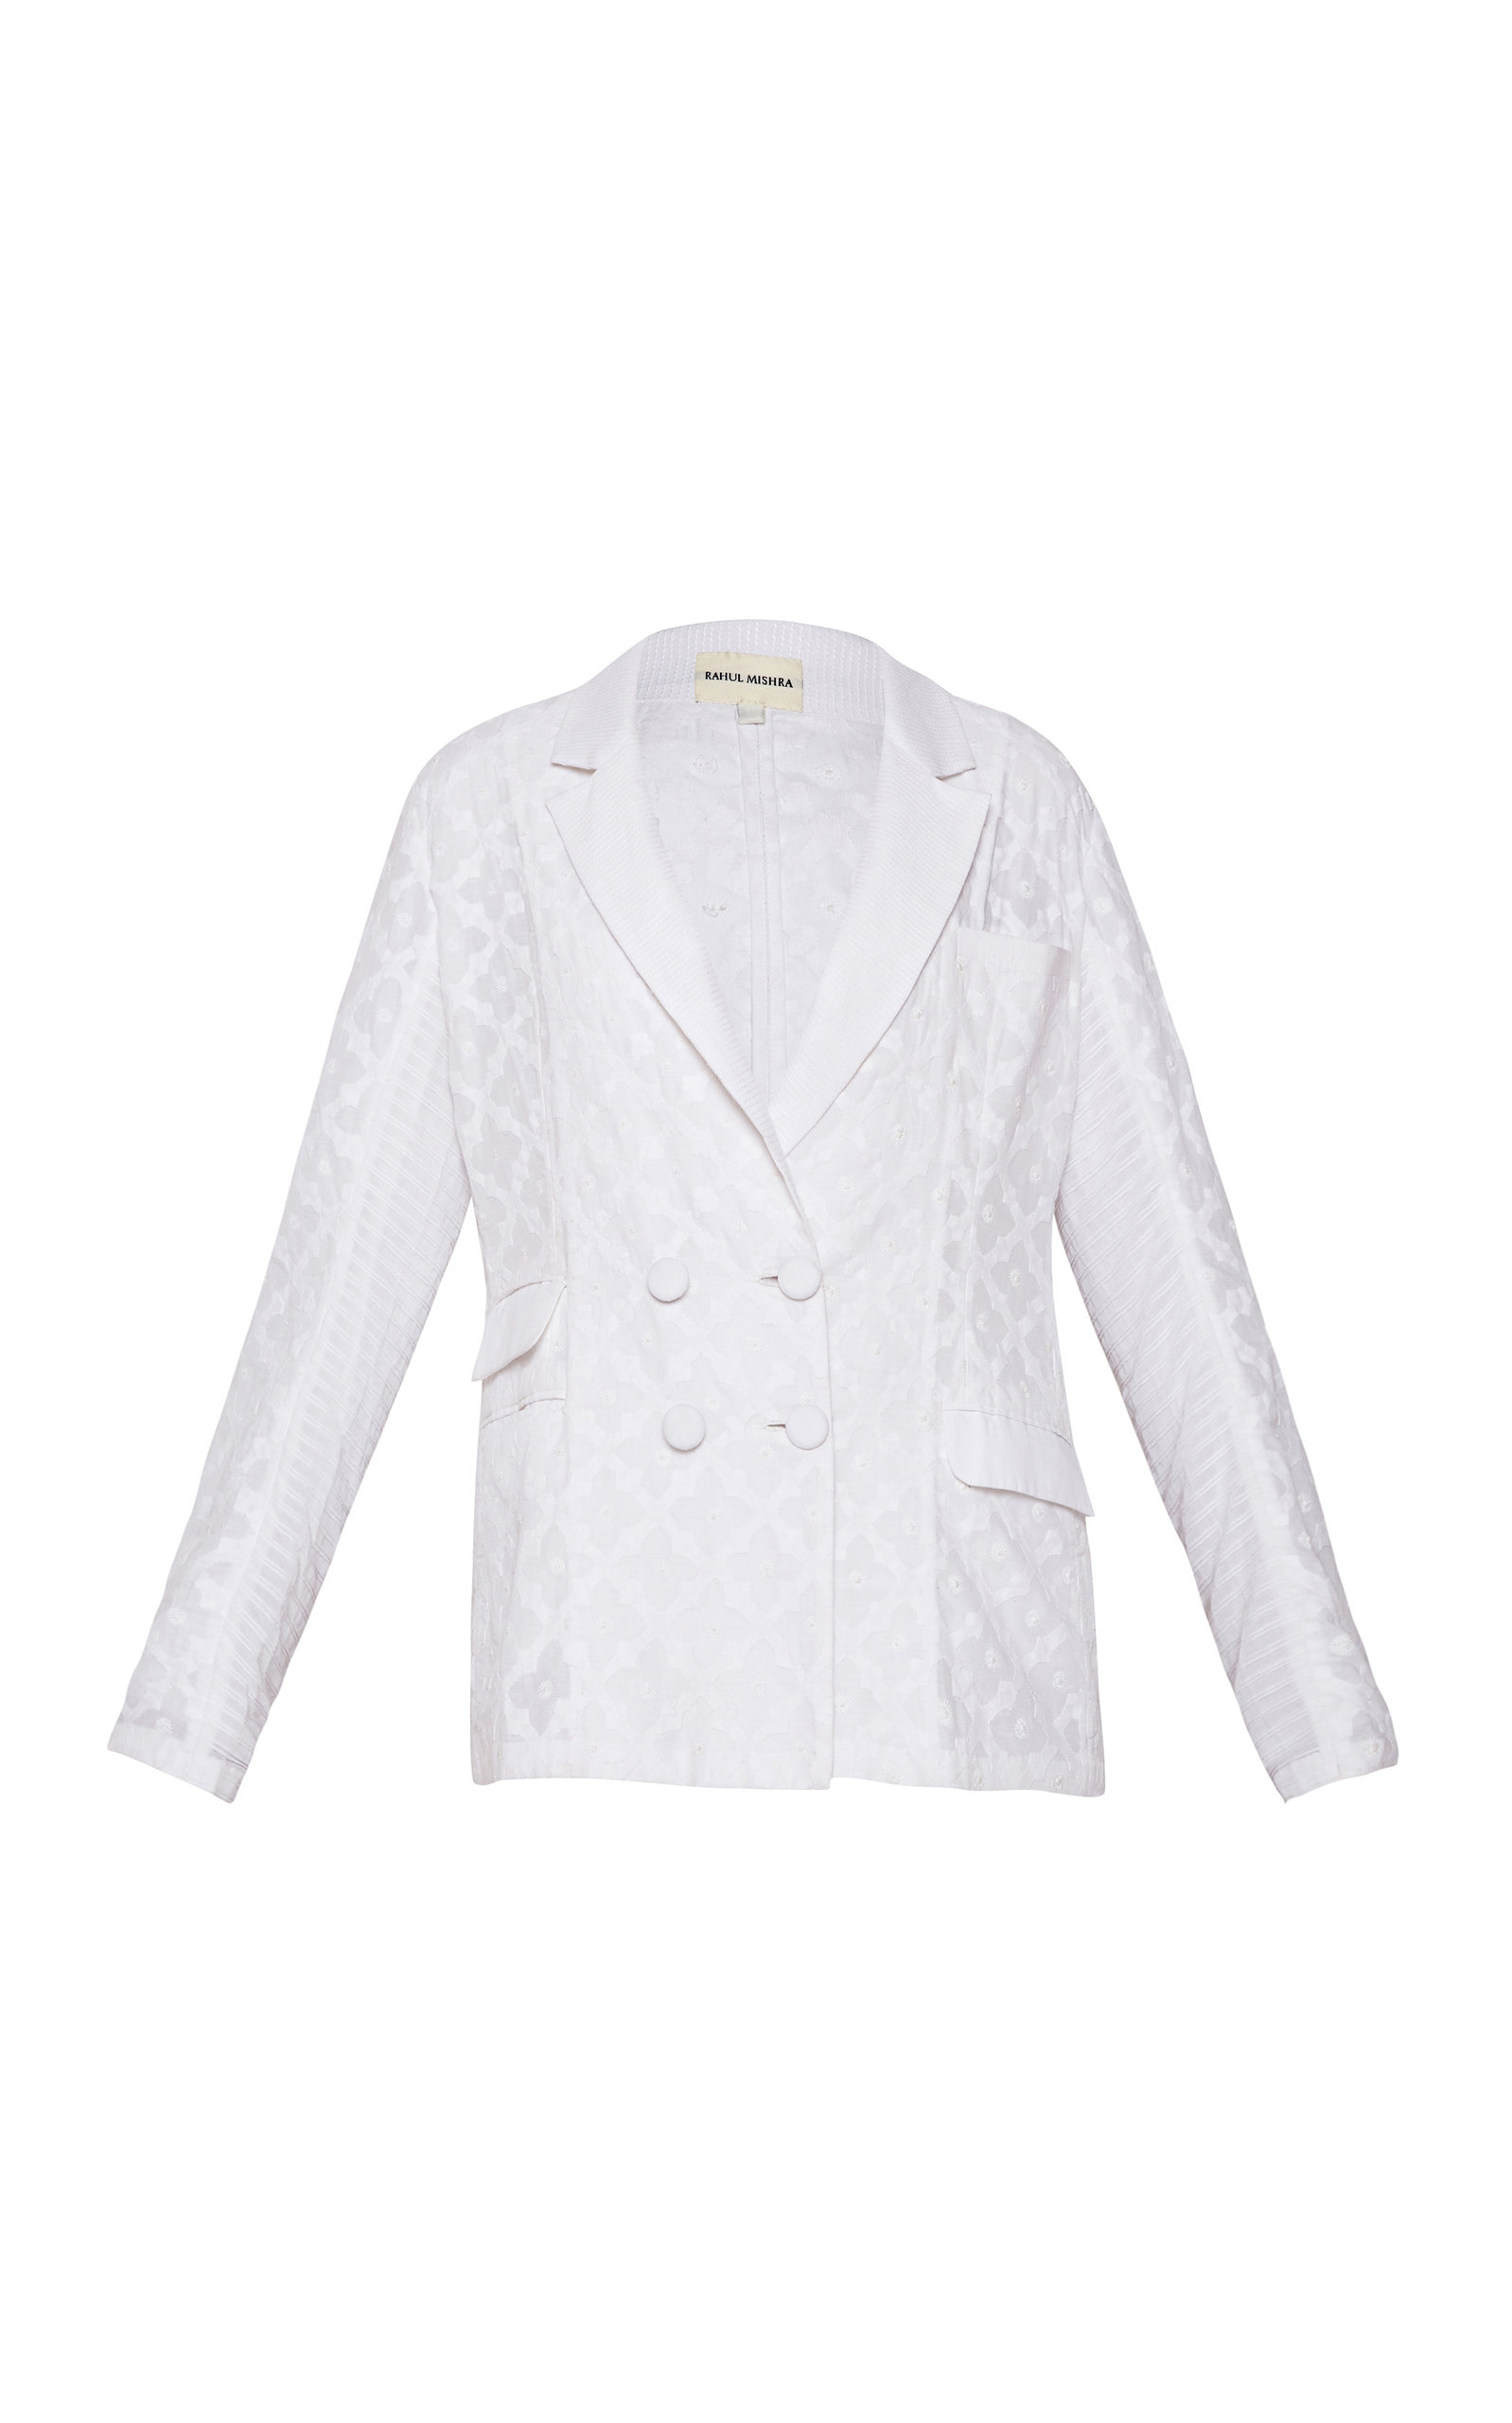 RAHUL MISHRA Jharokha Double Breasted Cotton Embroidered Blazer in White